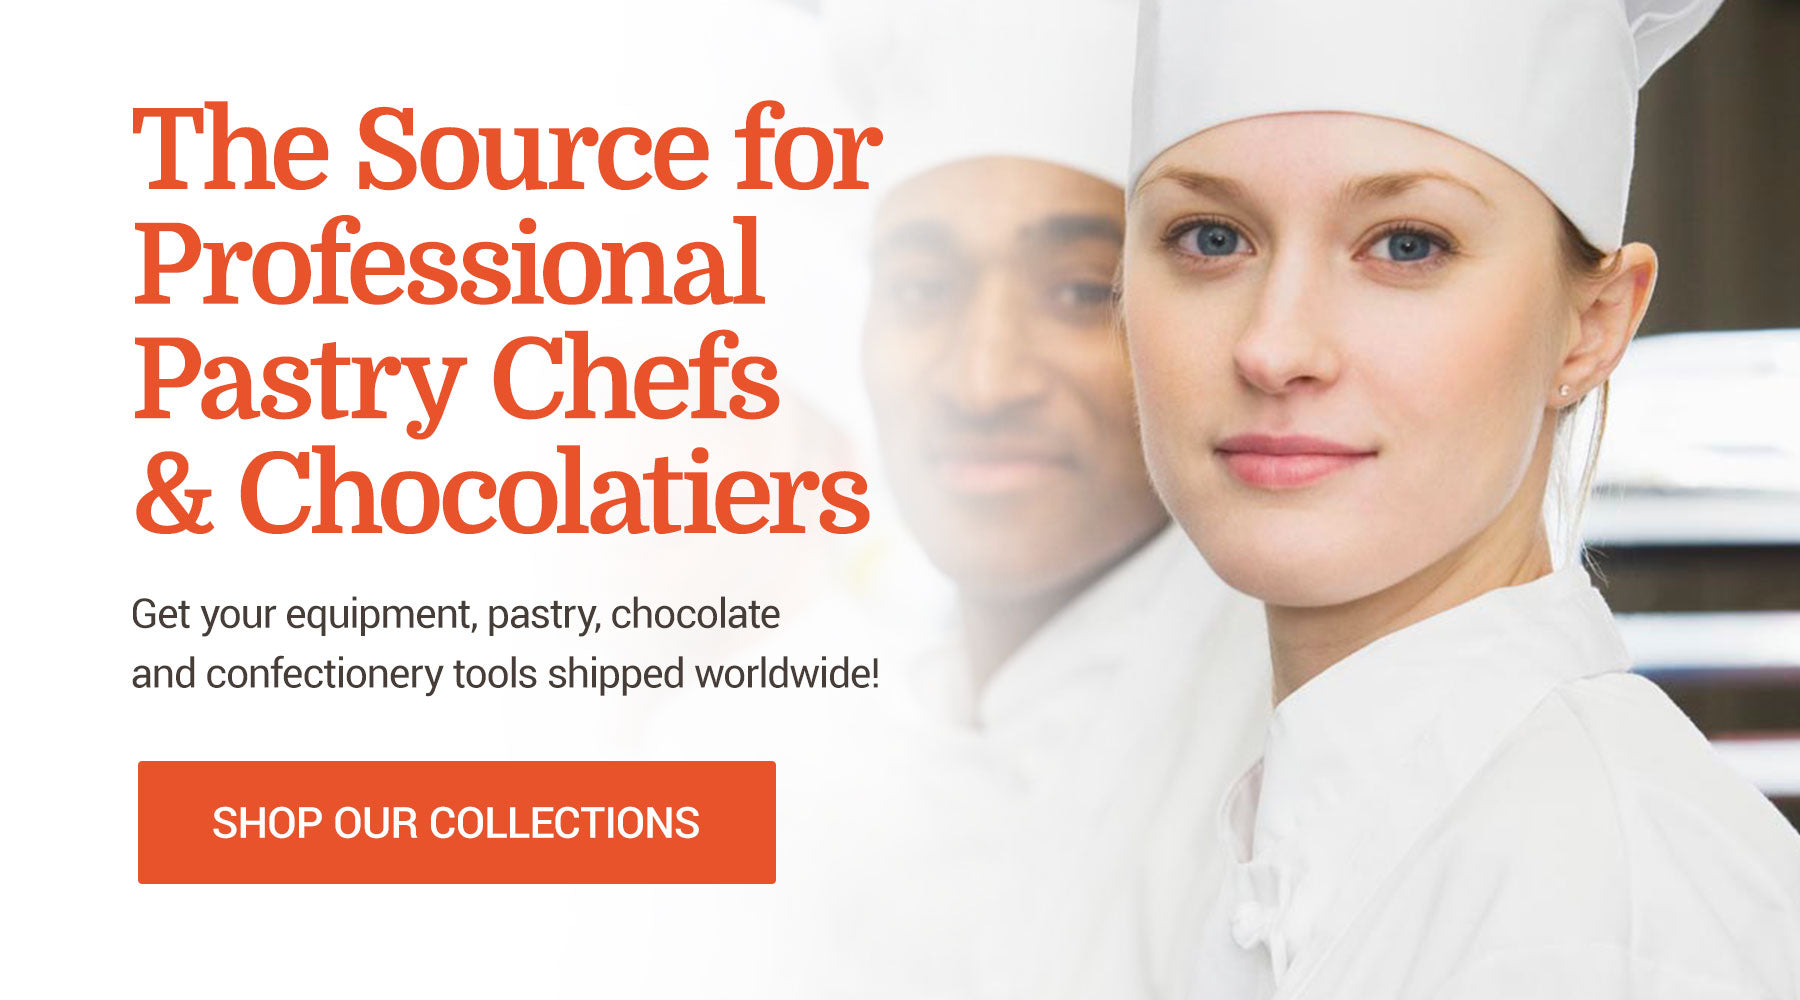 The Source for ProfessionalPastry Chefs & Chocolatiers